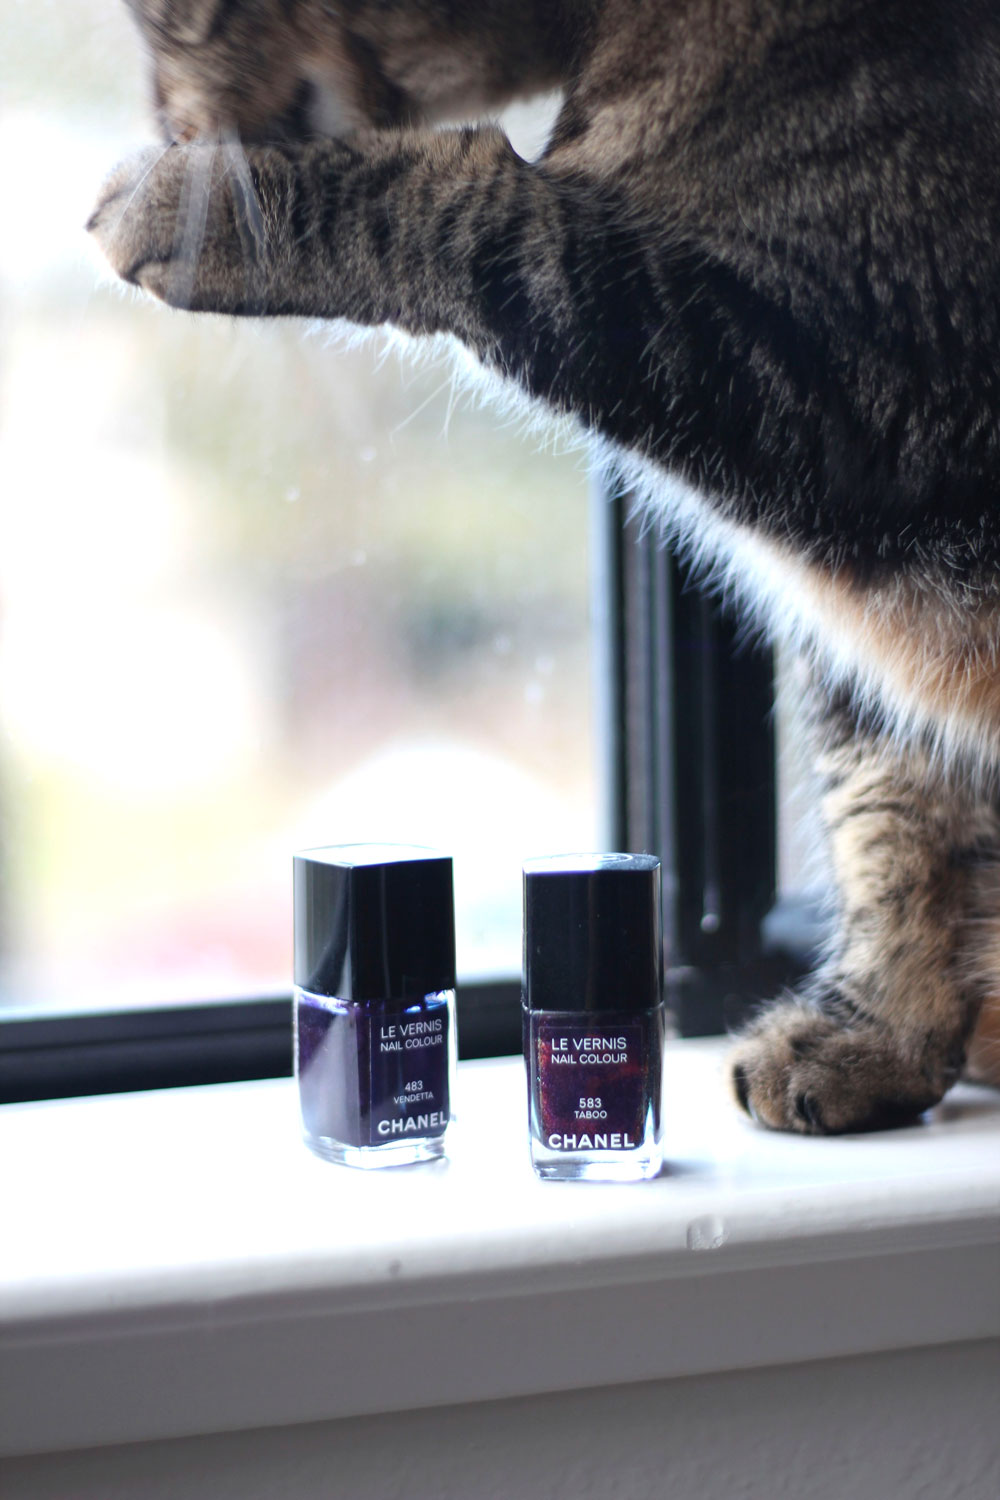 Chanel Le Vernis Nail Colours in 483 Vendetta and 583 Taboo